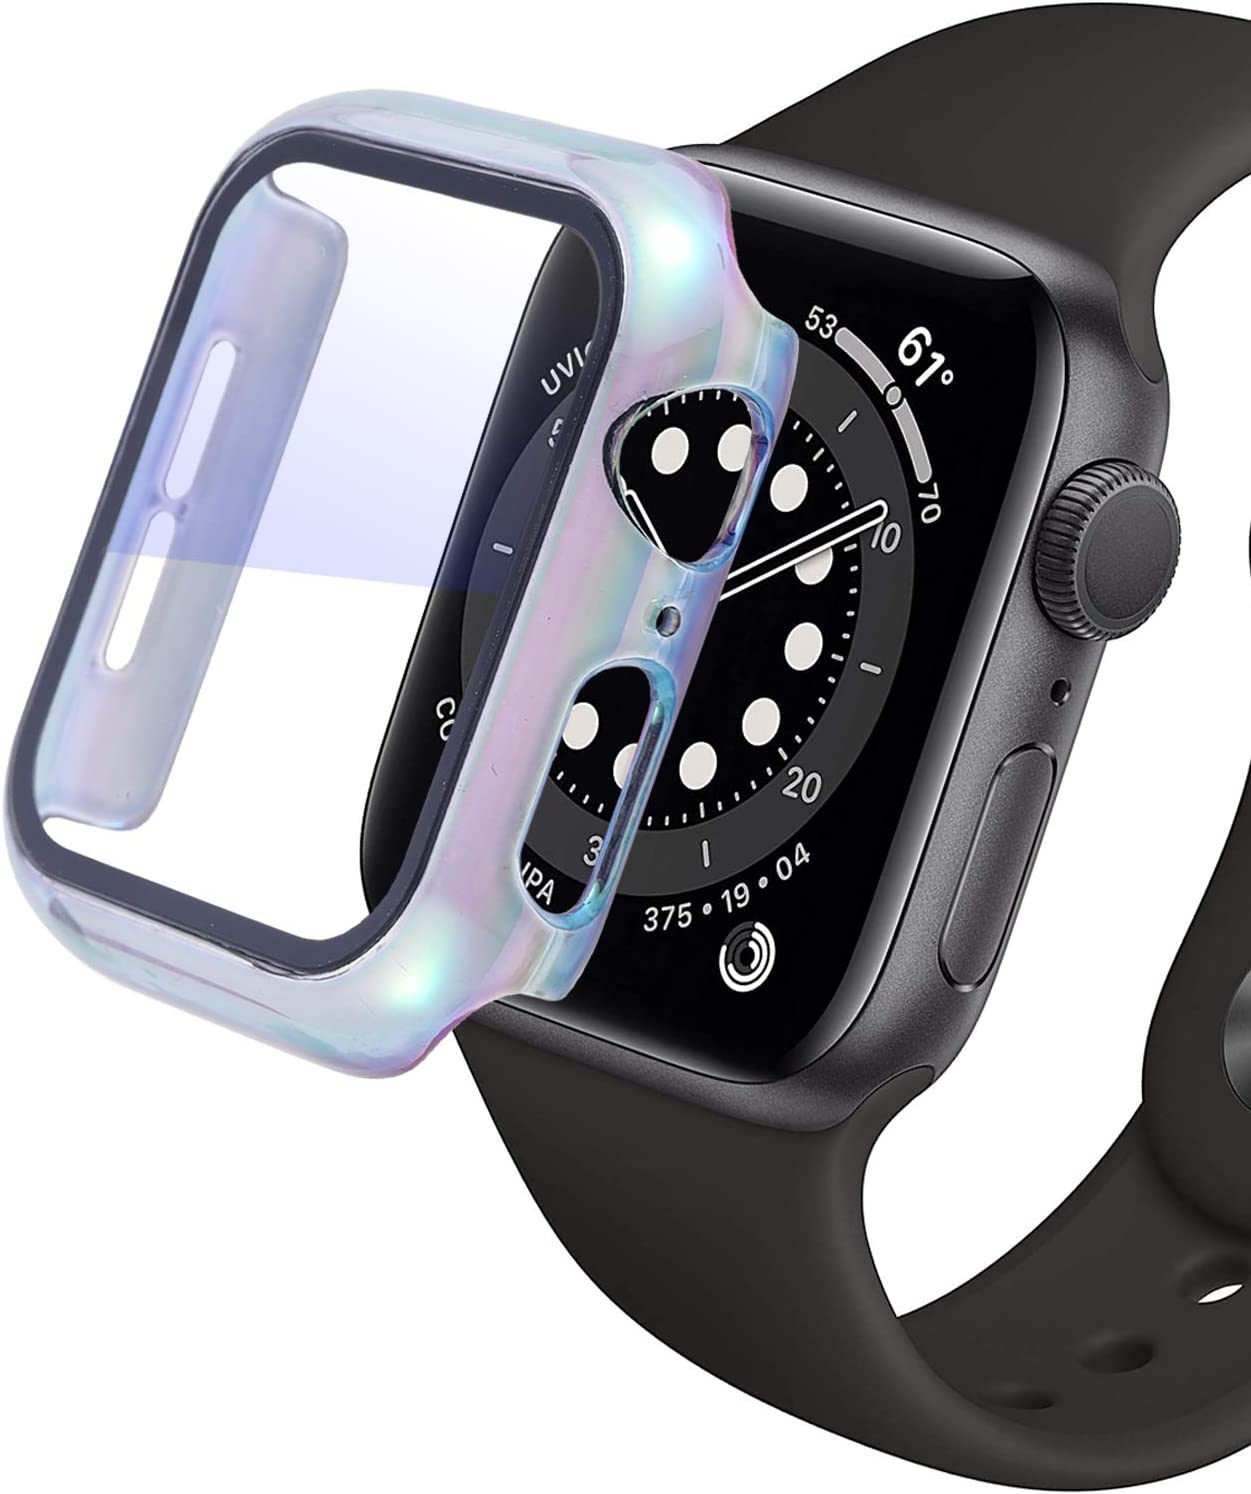 iTecFree for Apple Watch Case 40mm PC Hard Protective Cover Bumper with Screen Protector for iWatch SE Series 6 / Series 5 / Series 4 Accessories. (Colorful, 40mm)